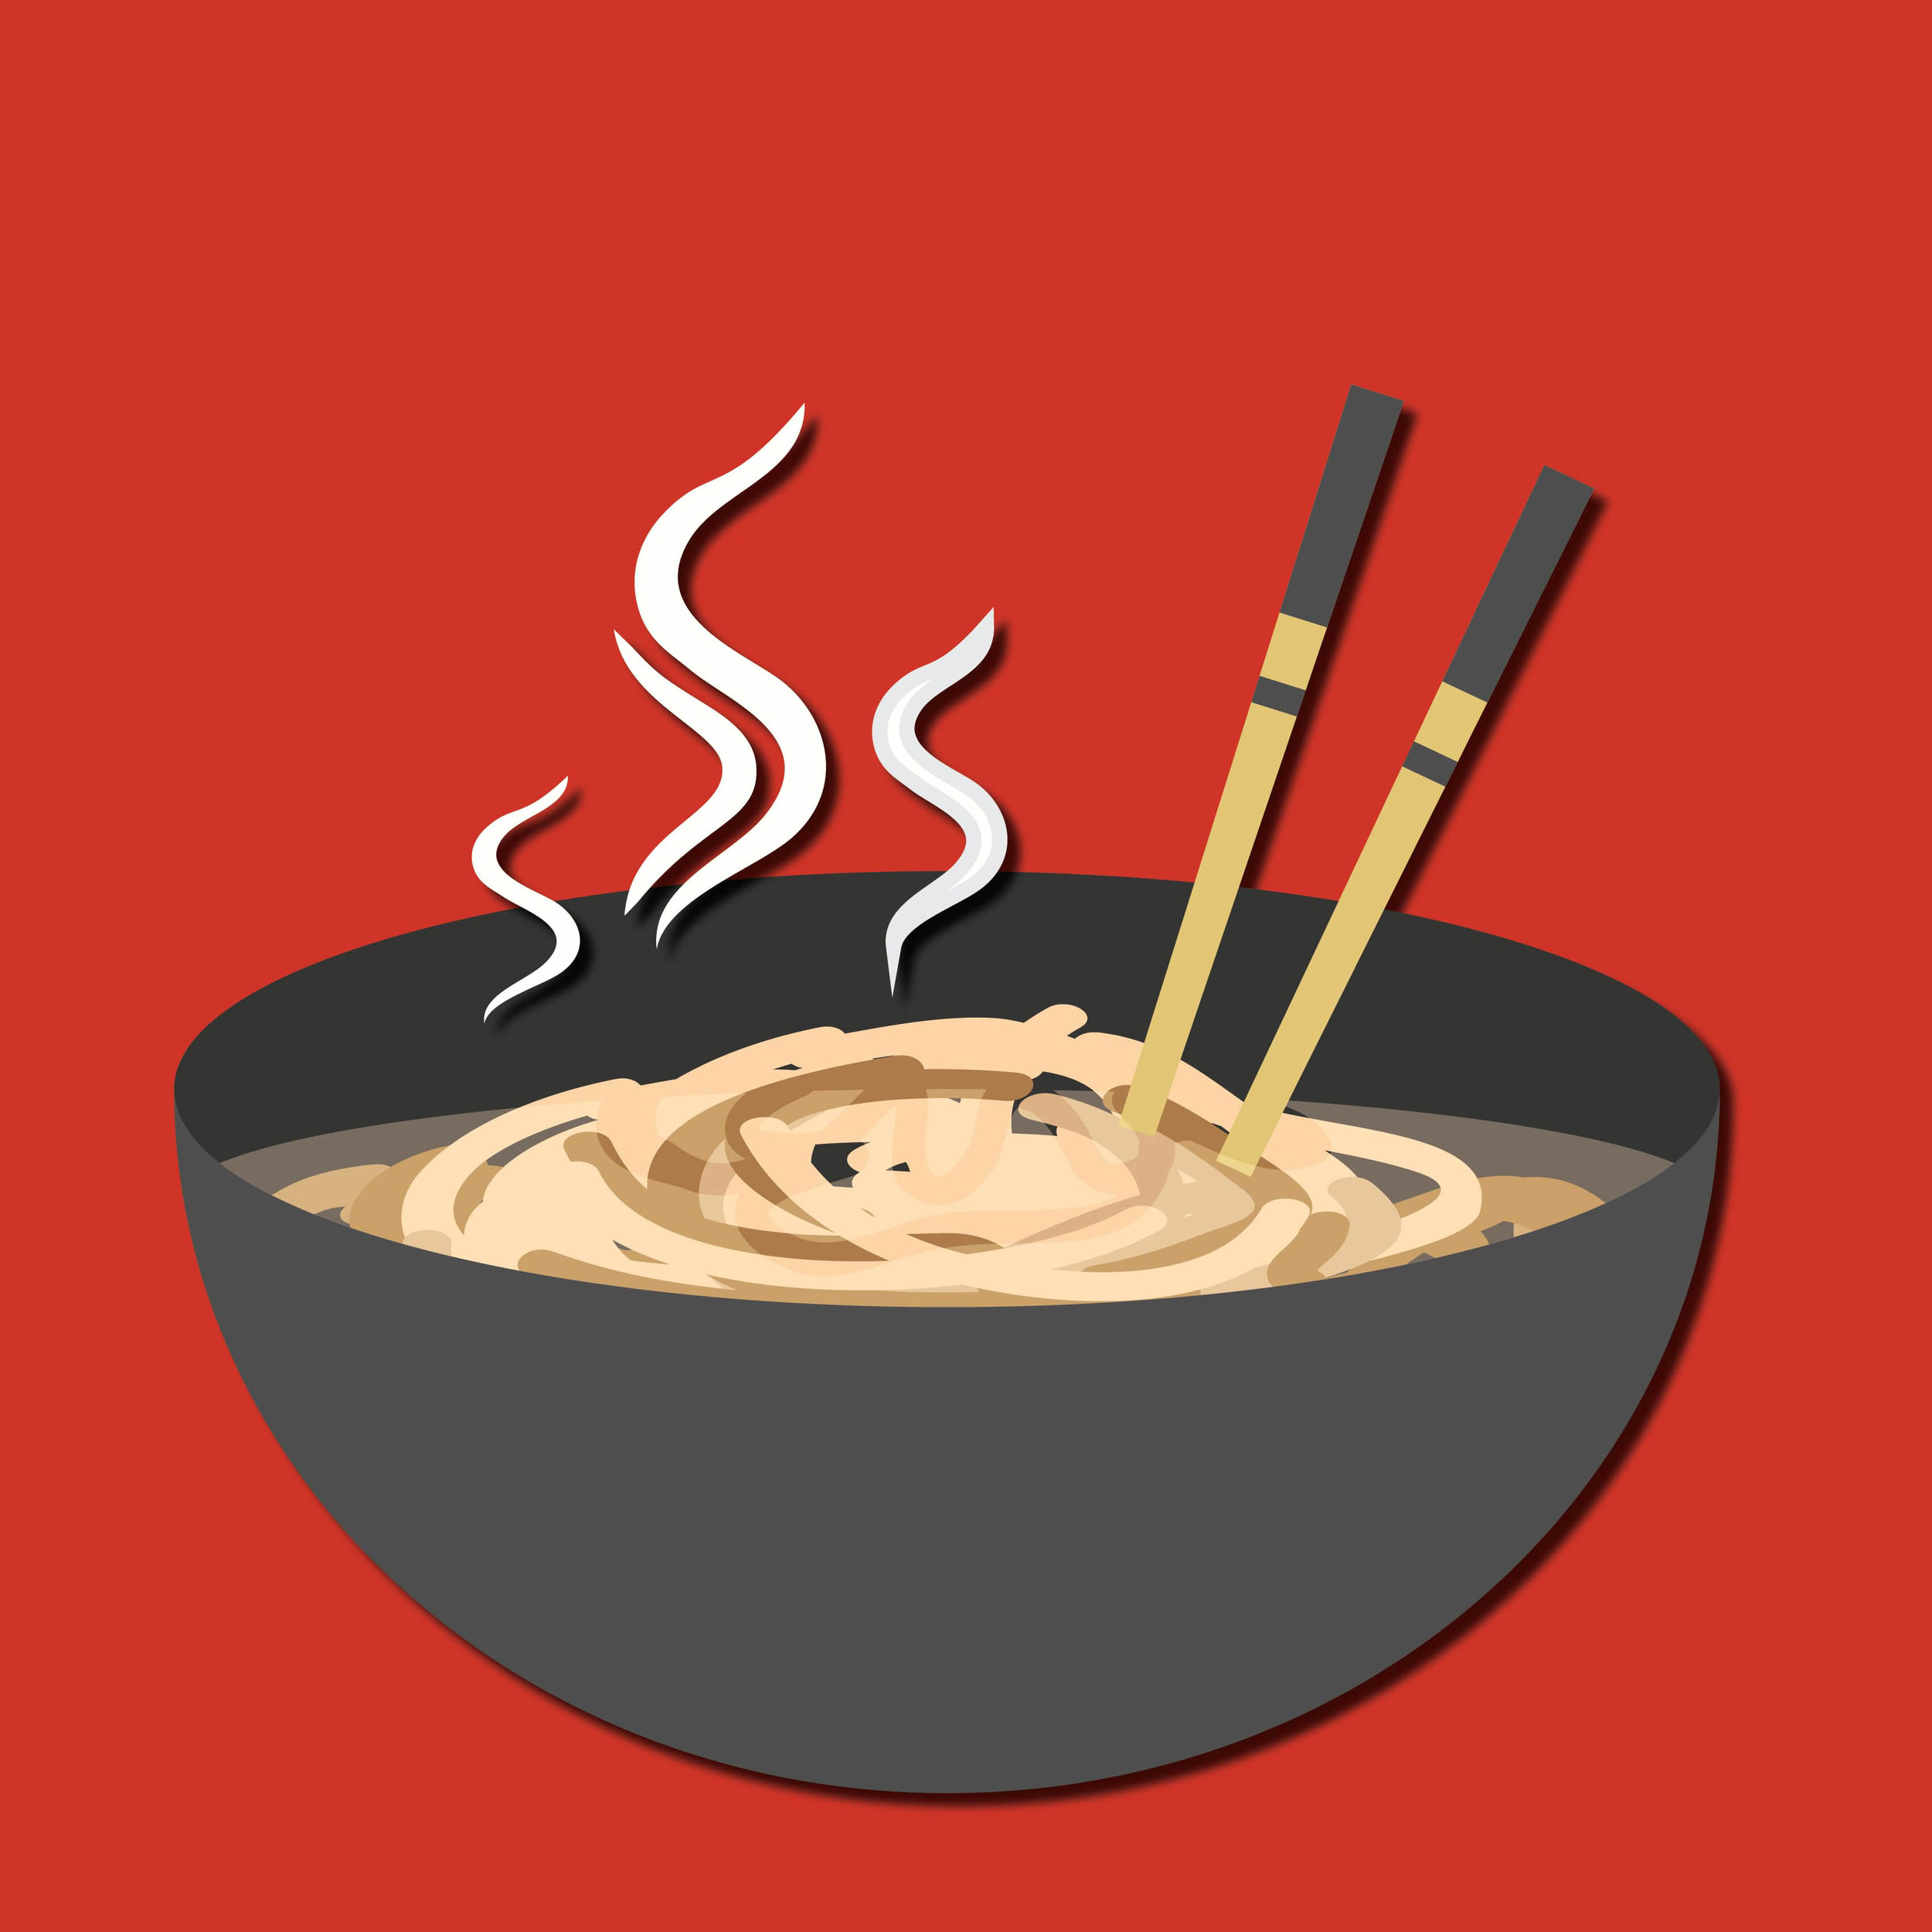 bausmedia-golden-chopsticks-case-study-icon